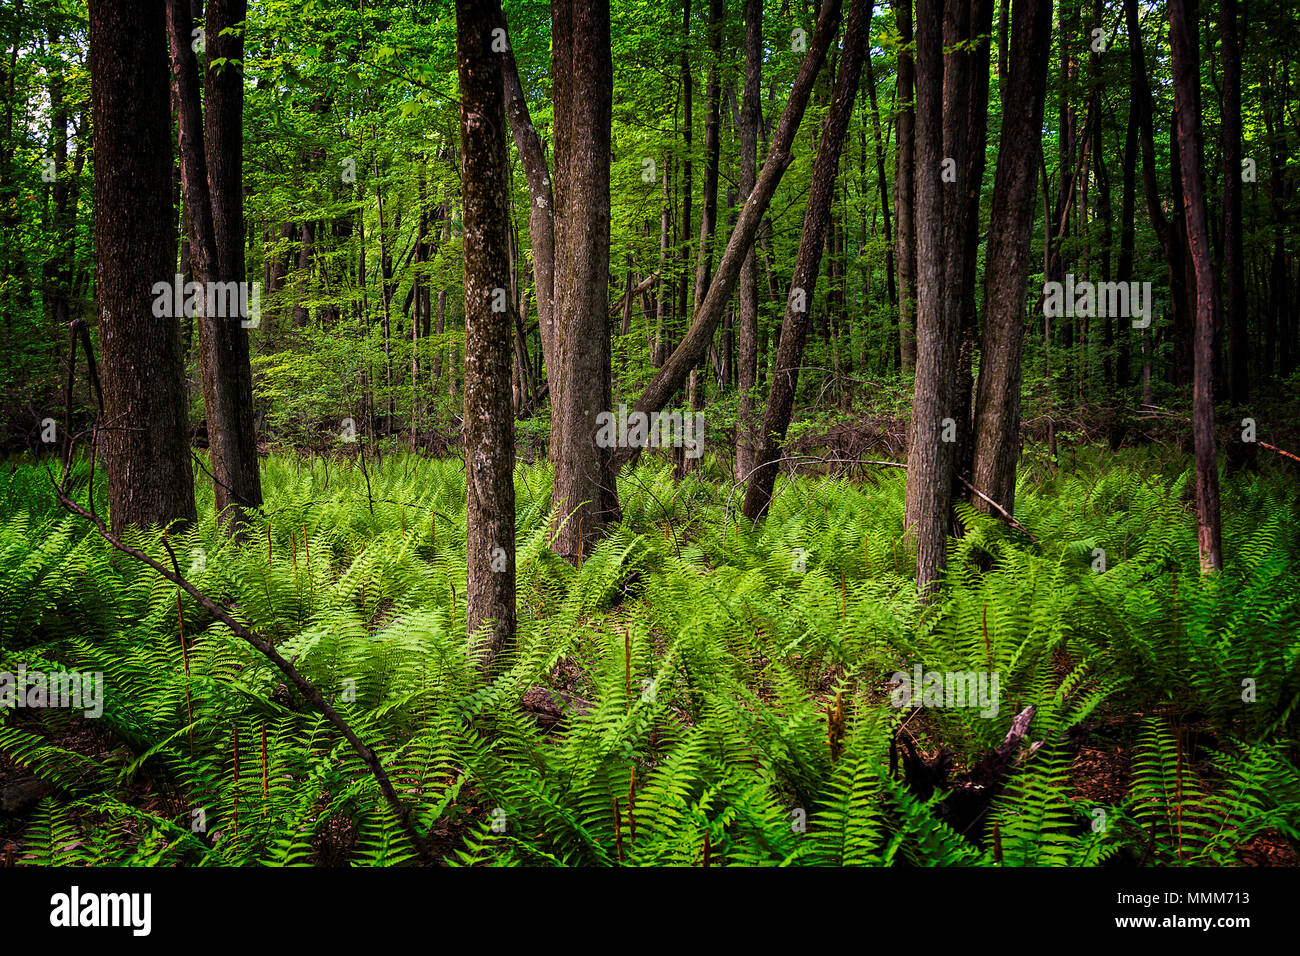 Hundreds of ferns on the forest floor during spring. Seen at Oak Openings park in Swanton Ohio. Stock Photo